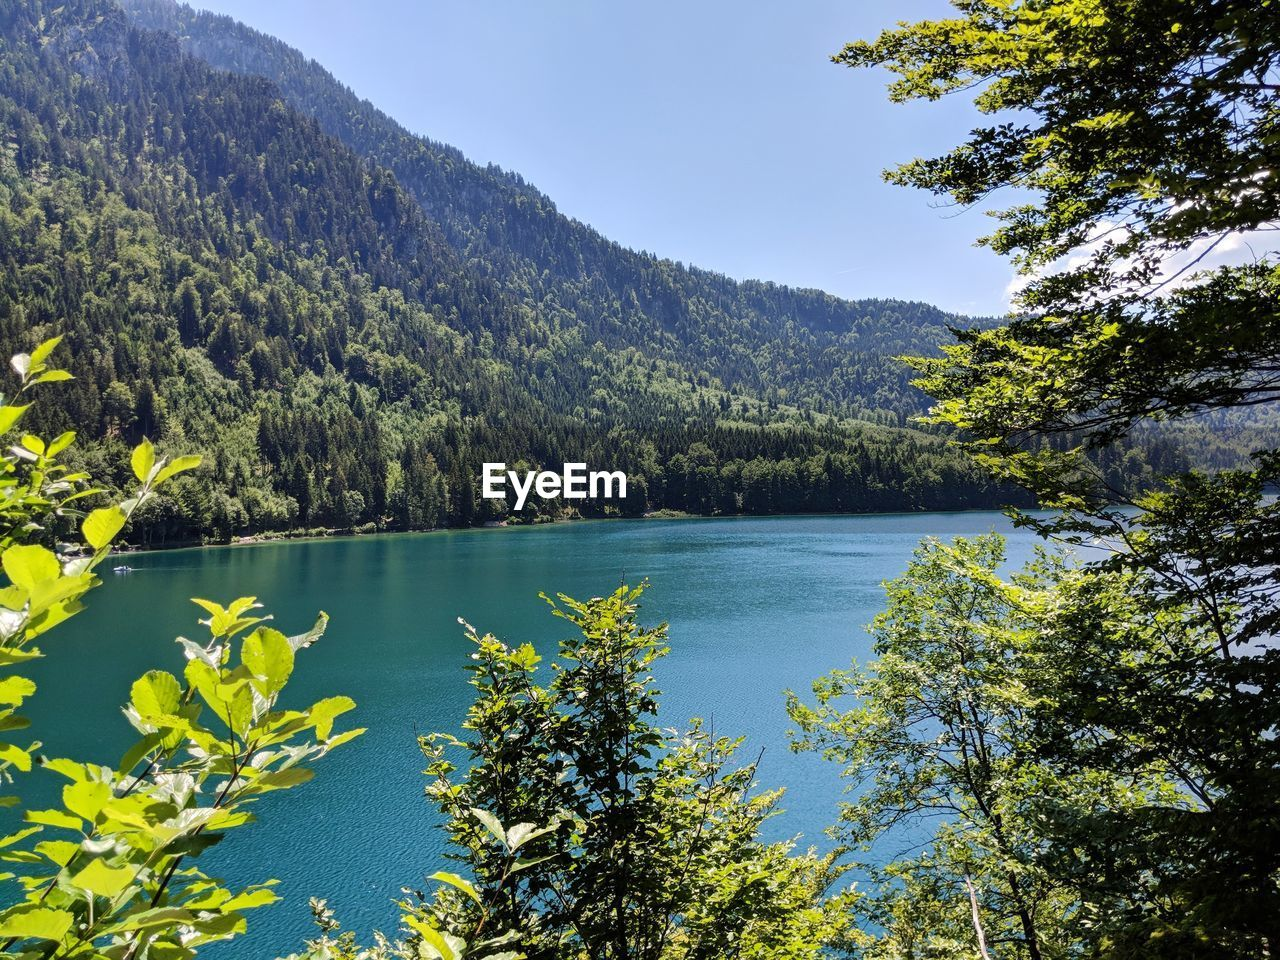 beauty in nature, water, plant, scenics - nature, tranquility, tree, tranquil scene, mountain, lake, growth, nature, sky, day, non-urban scene, no people, idyllic, remote, forest, outdoors, coniferous tree